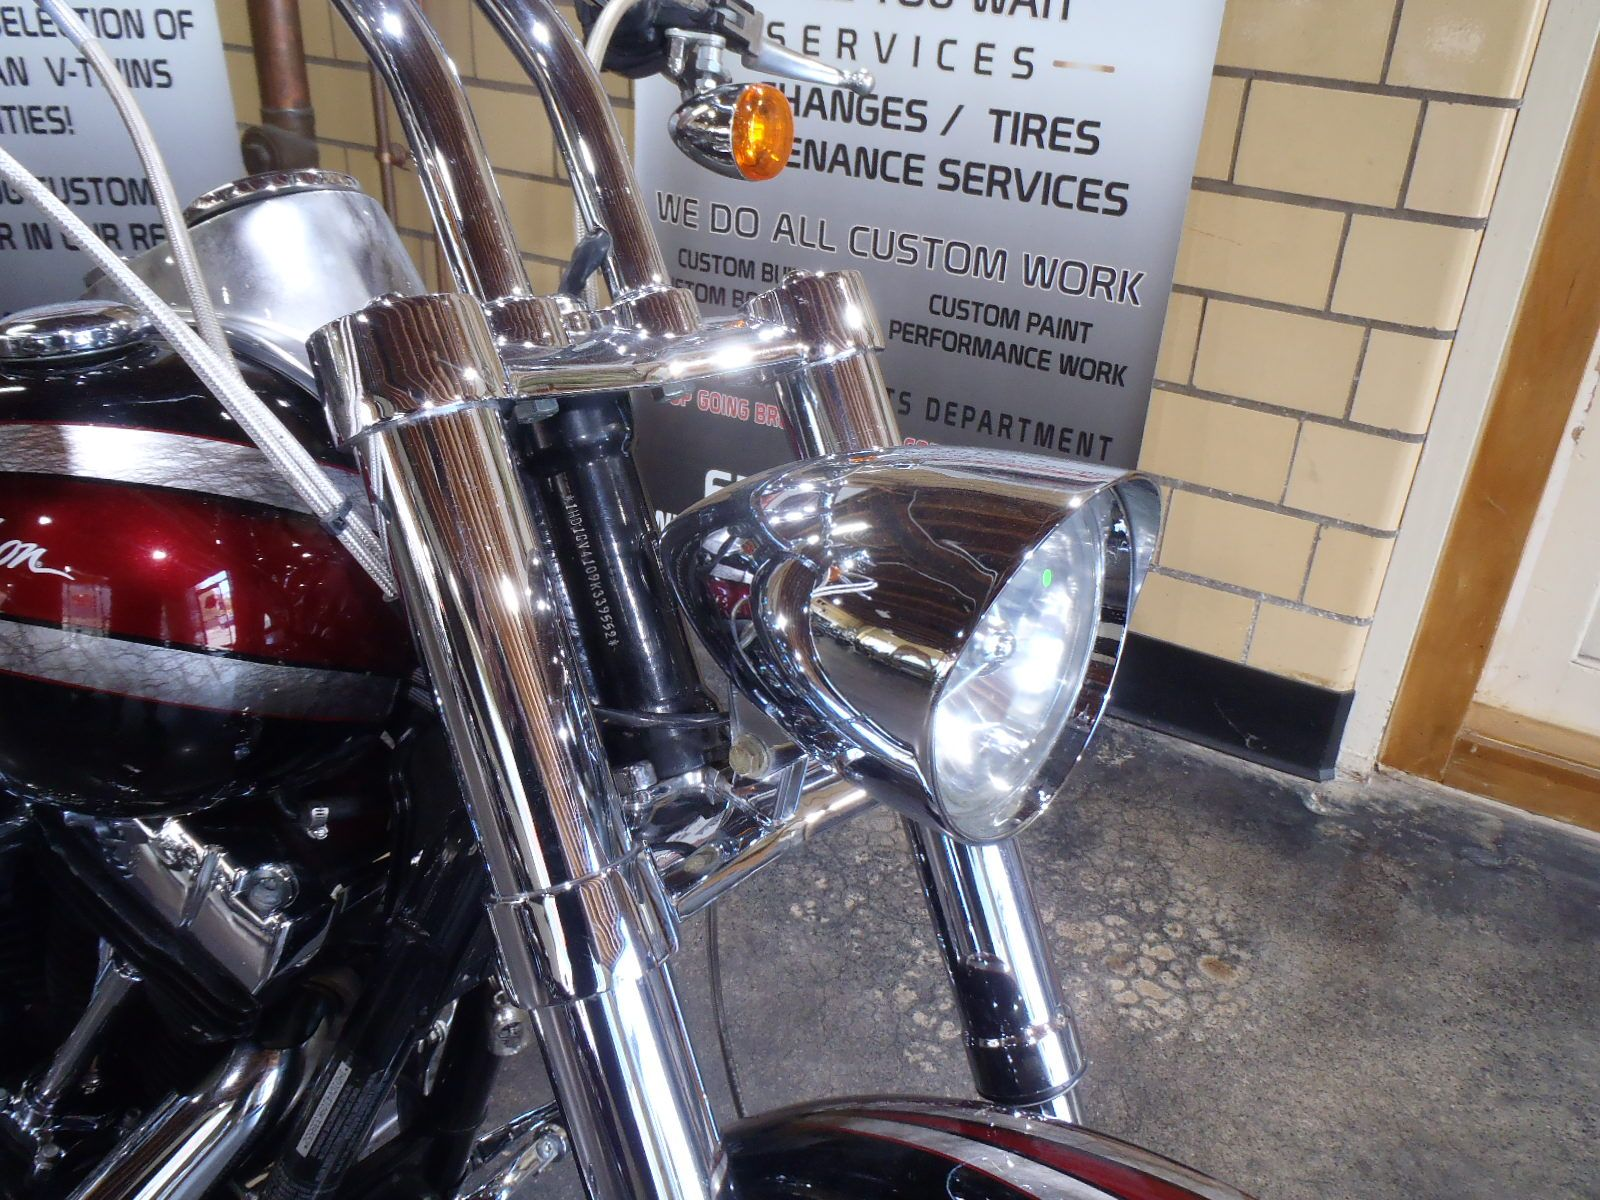 2009 Harley-Davidson Dyna Super Glide Custom in South Saint Paul, Minnesota - Photo 7